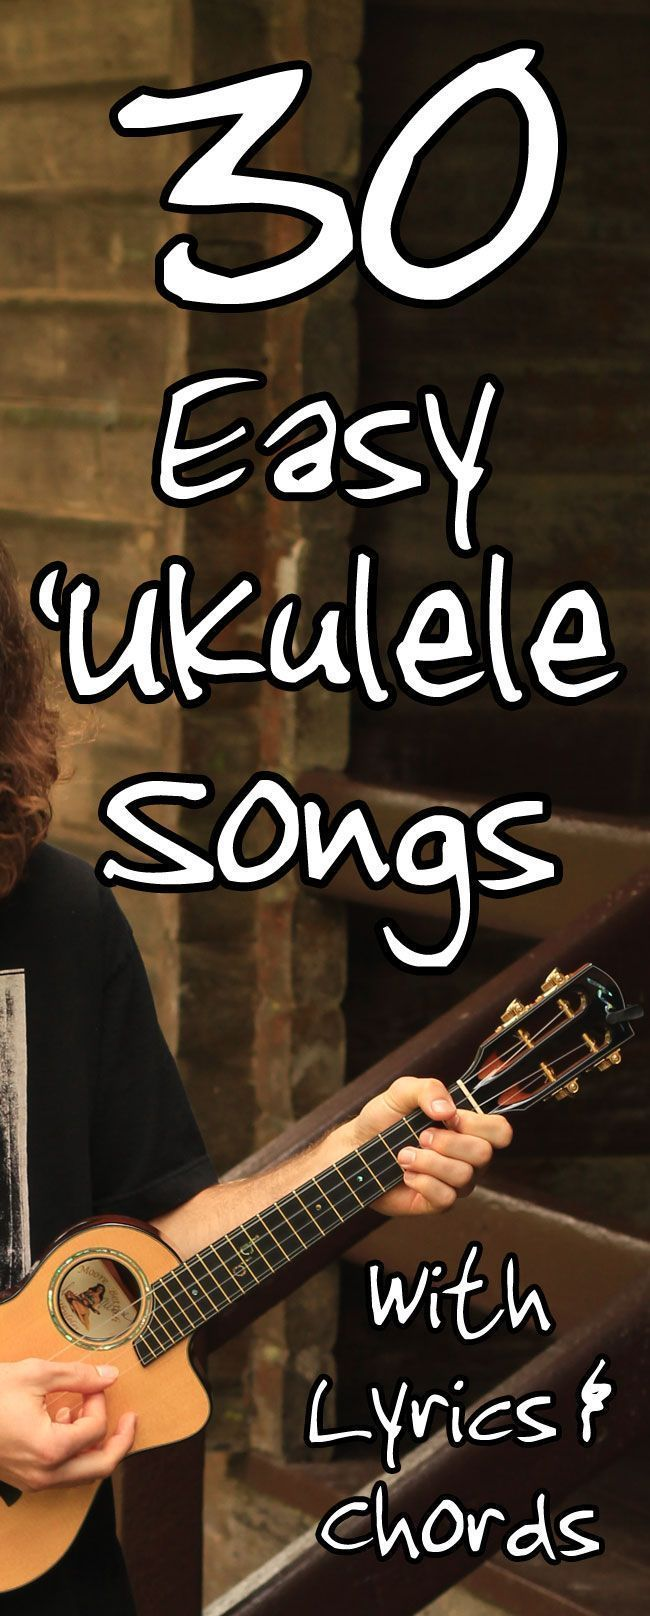 30 Easy Ukulele Songs For Beginners - 3 or 4 chord songs with lyrics. #guitarforbeginners